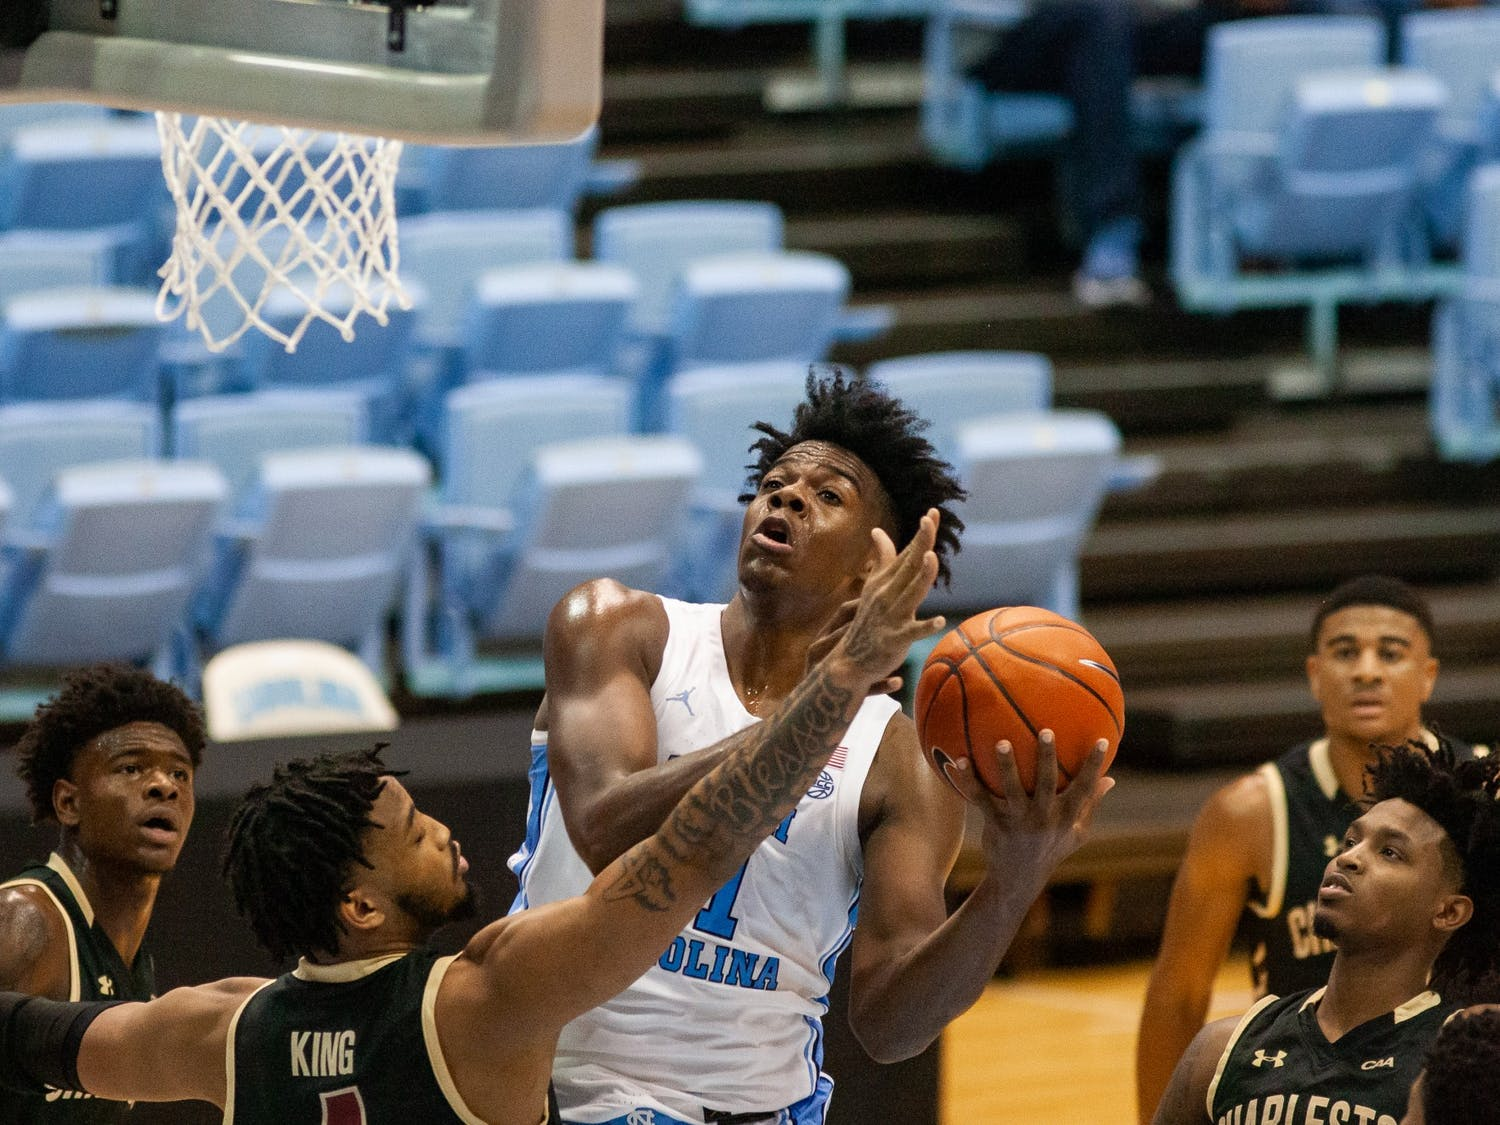 UNC first year Day'Ron Sharpe (11) forward drives toward the basket during a game against the College of Charleston in the Smith Center on Wednesday, Nov. 25, 2020. UNC won the game 79-60.